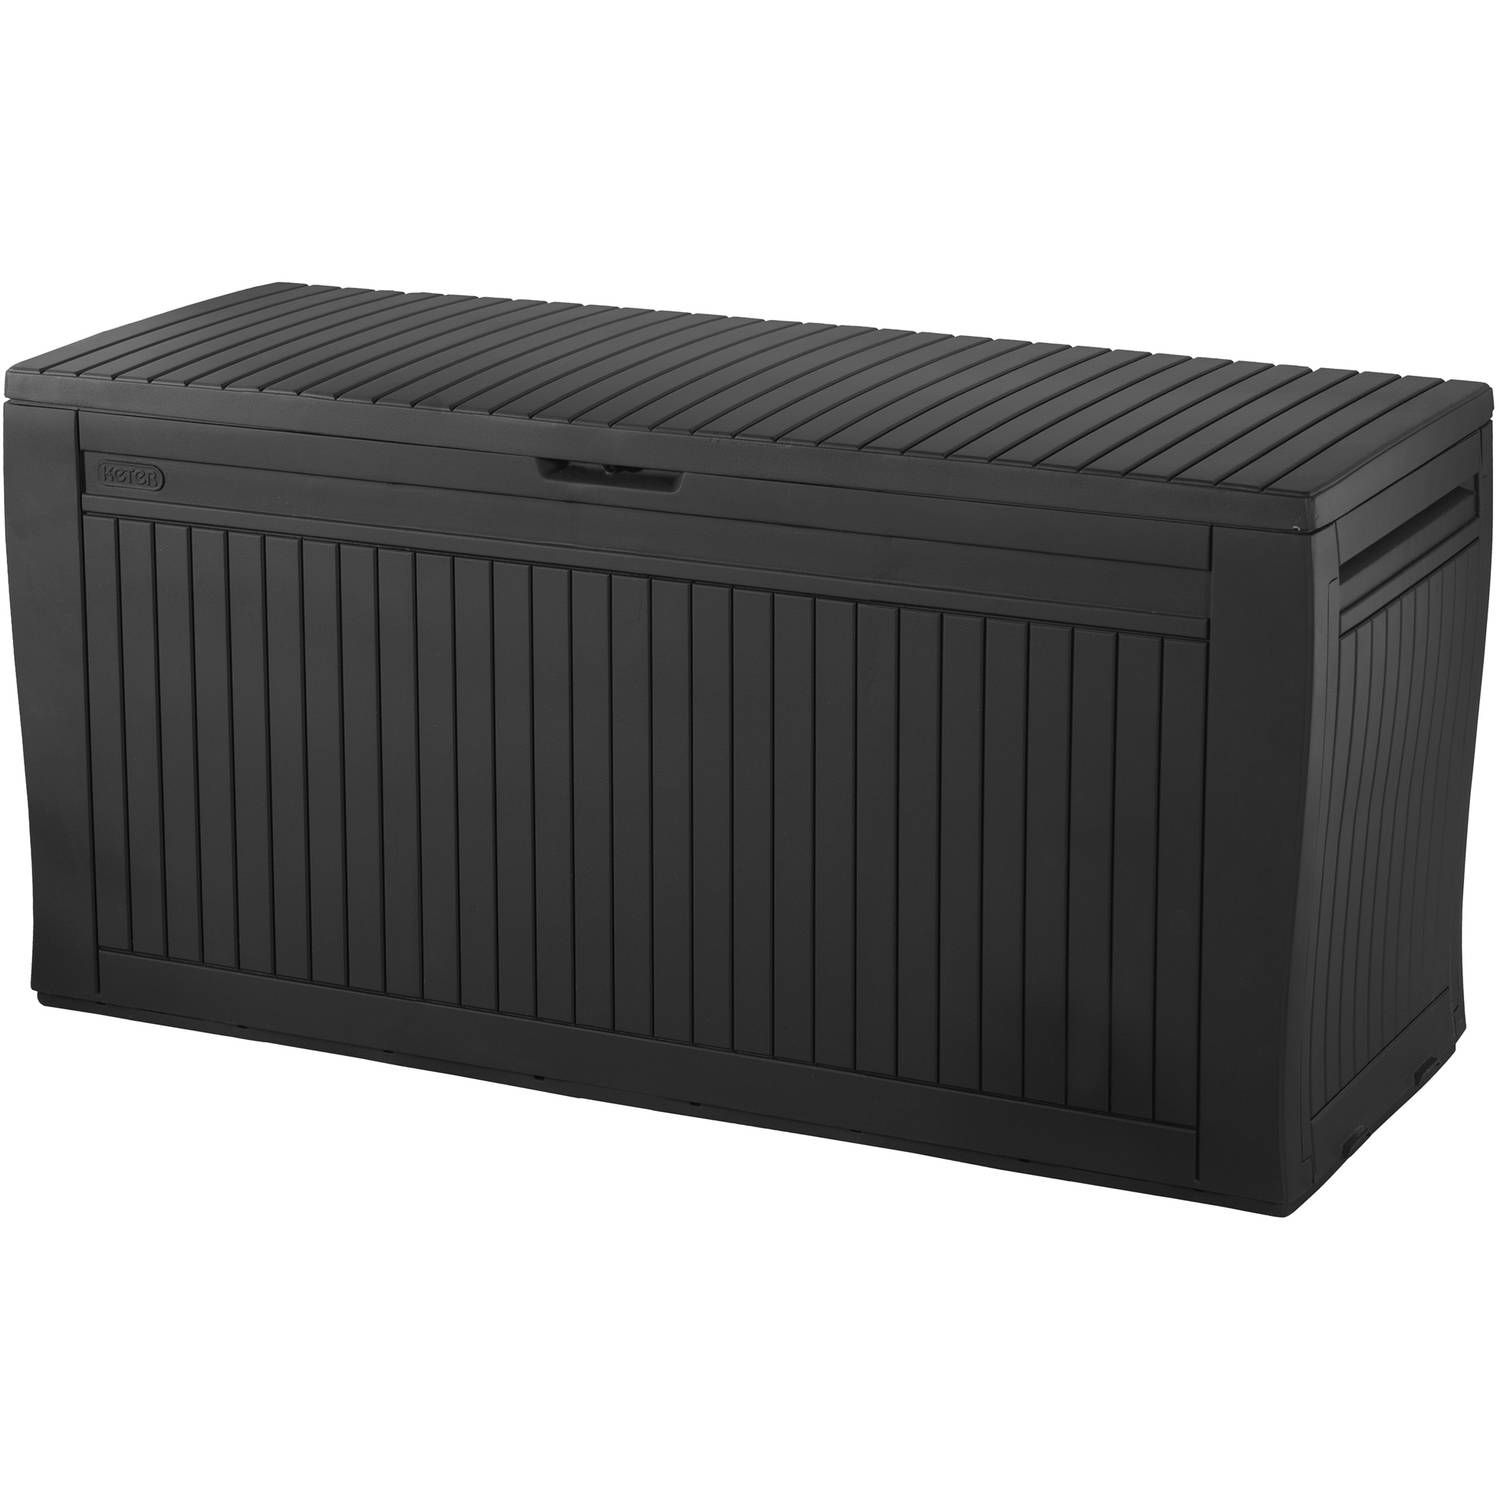 Merveilleux Product Image Keter Comfy 71 Gal Outdoor Deck Box, Espresso Brown